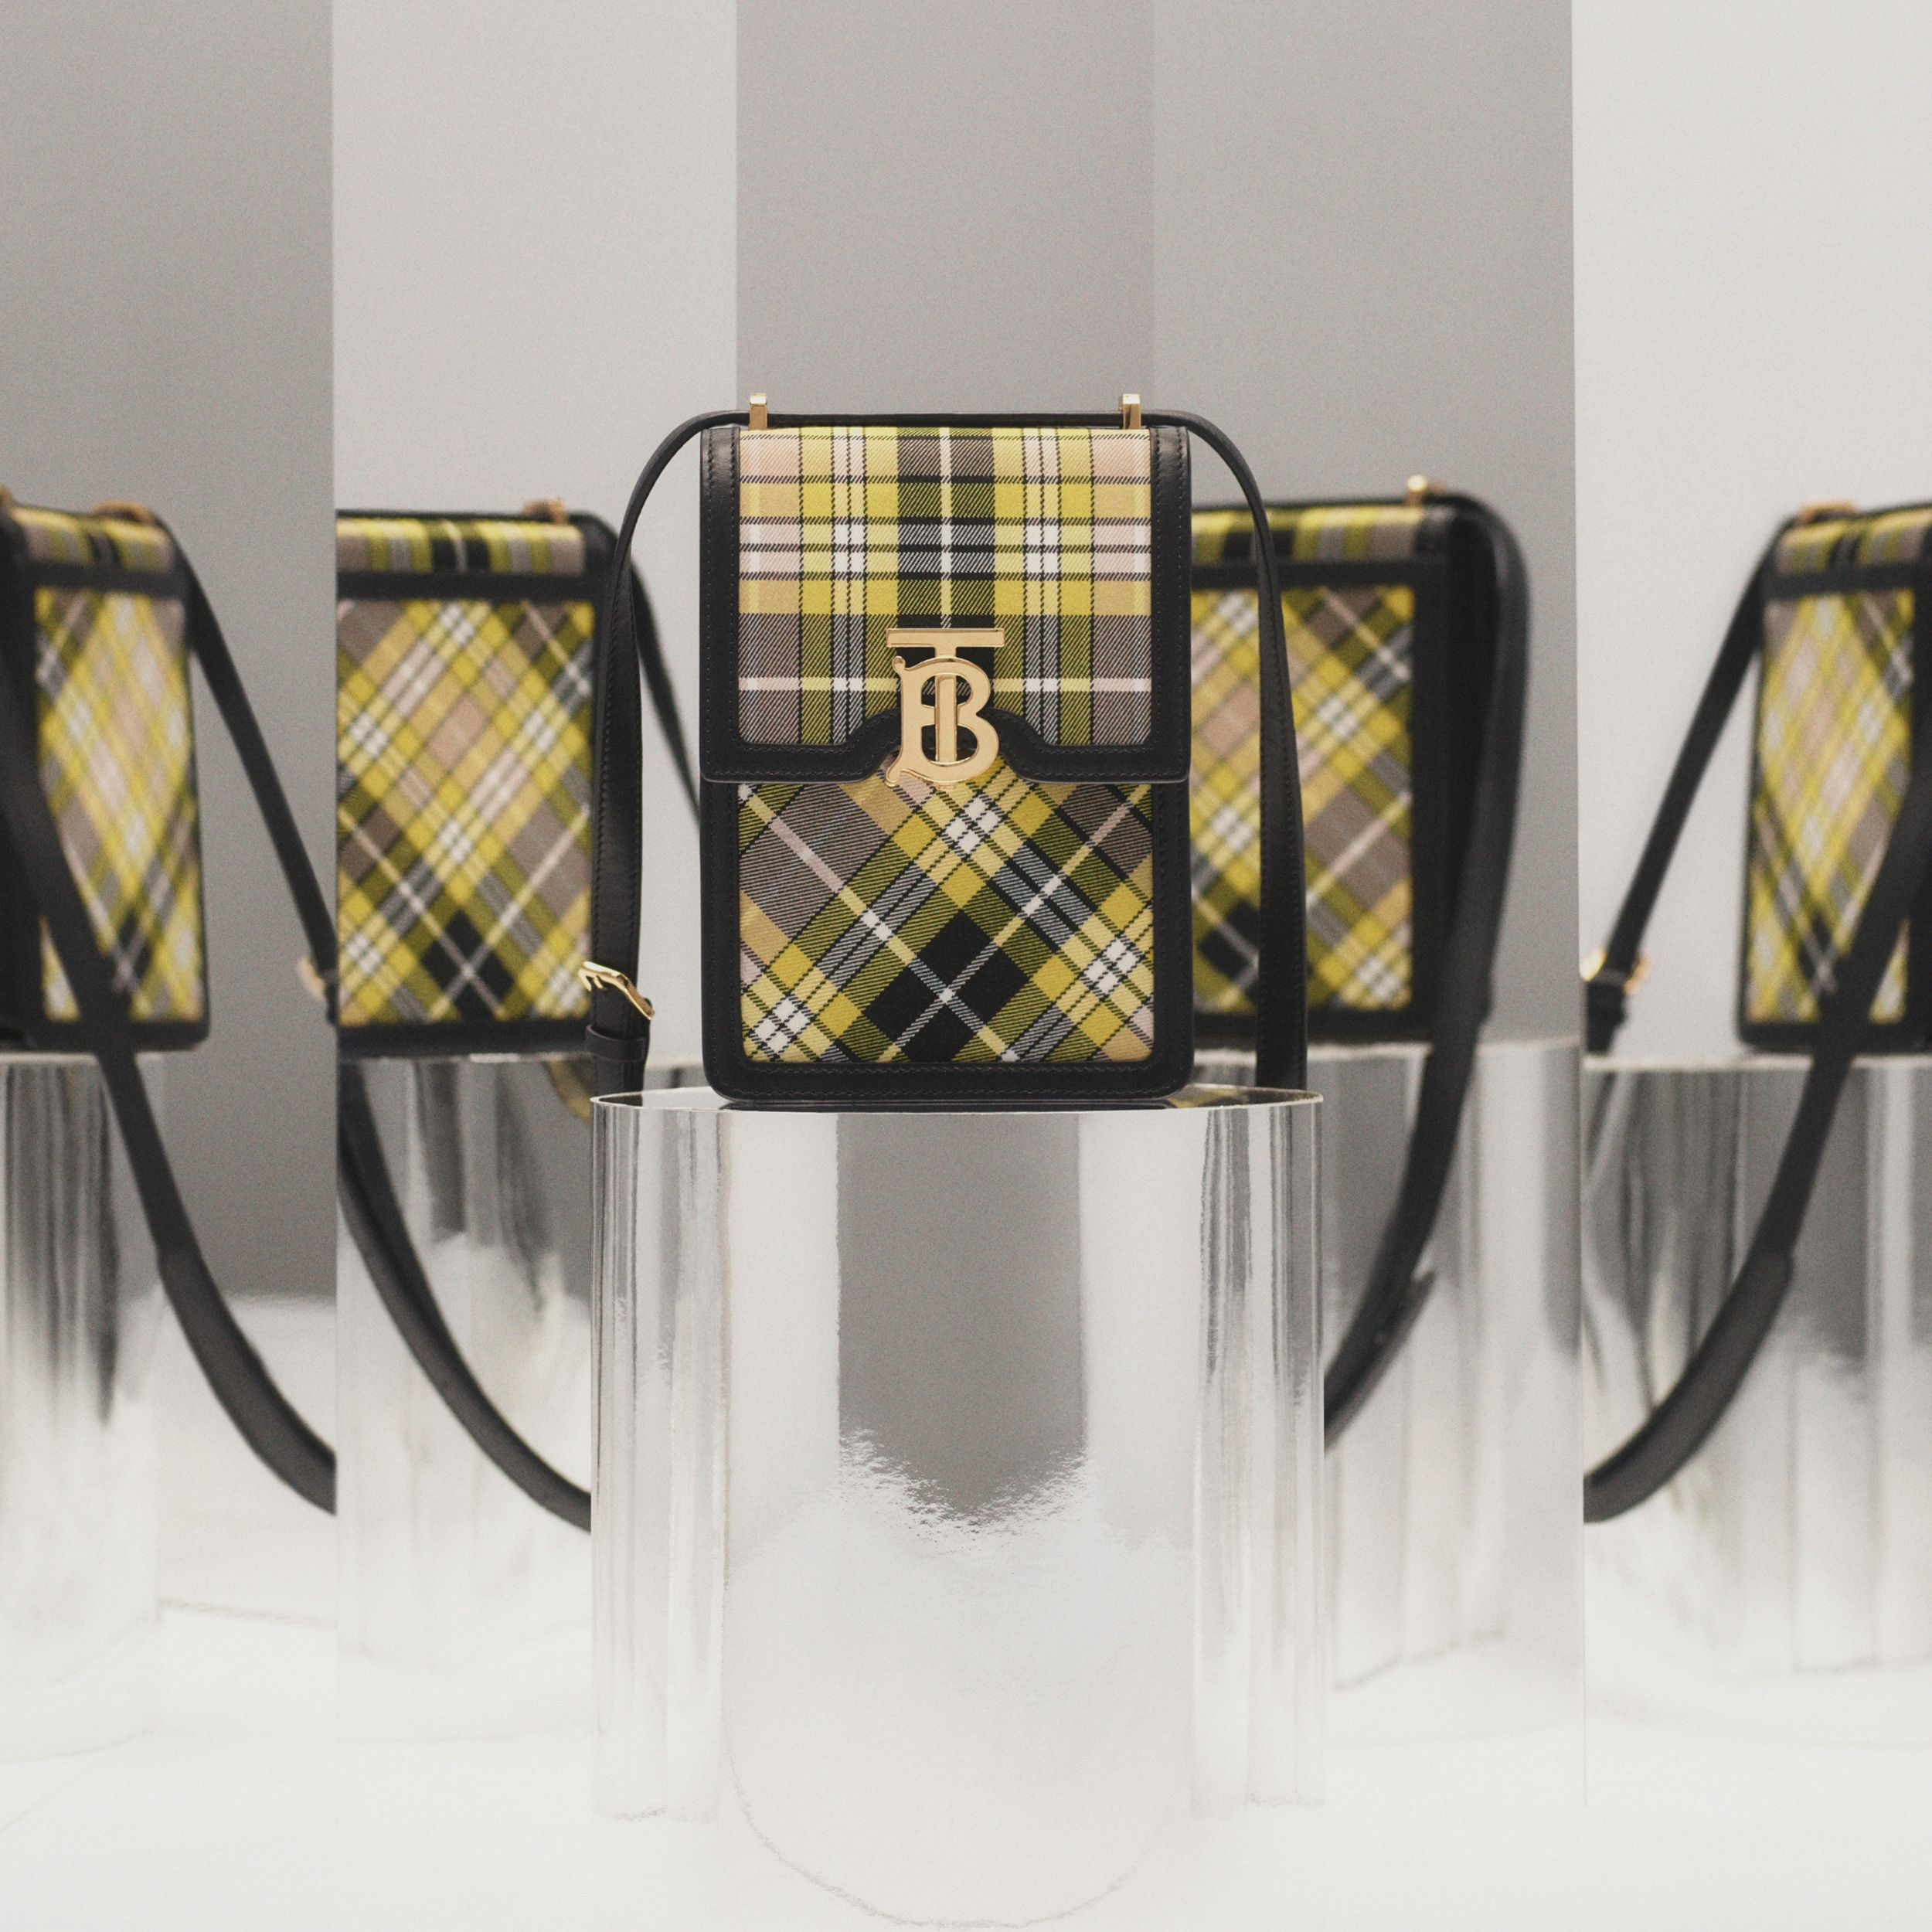 Tartan Cotton and Leather Robin Bag in Marigold Yellow - Women | Burberry United Kingdom - 2